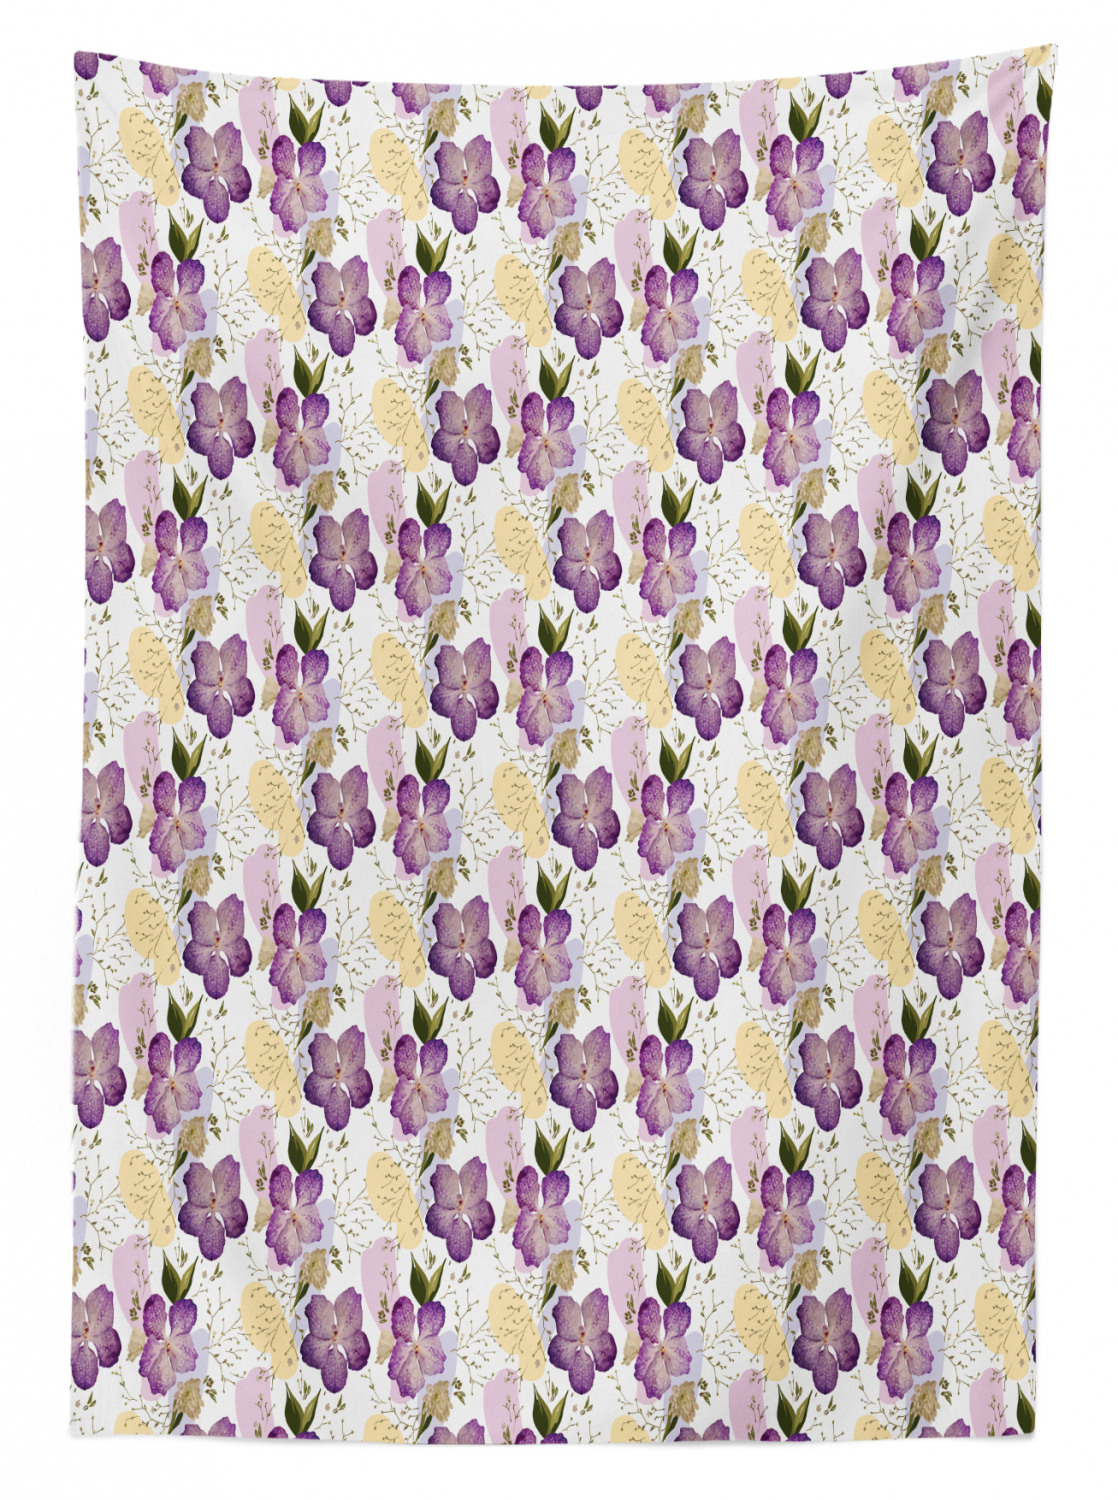 Garden Art Outdoor Picnic Tablecloth in 3 Sizes Washable Waterproof